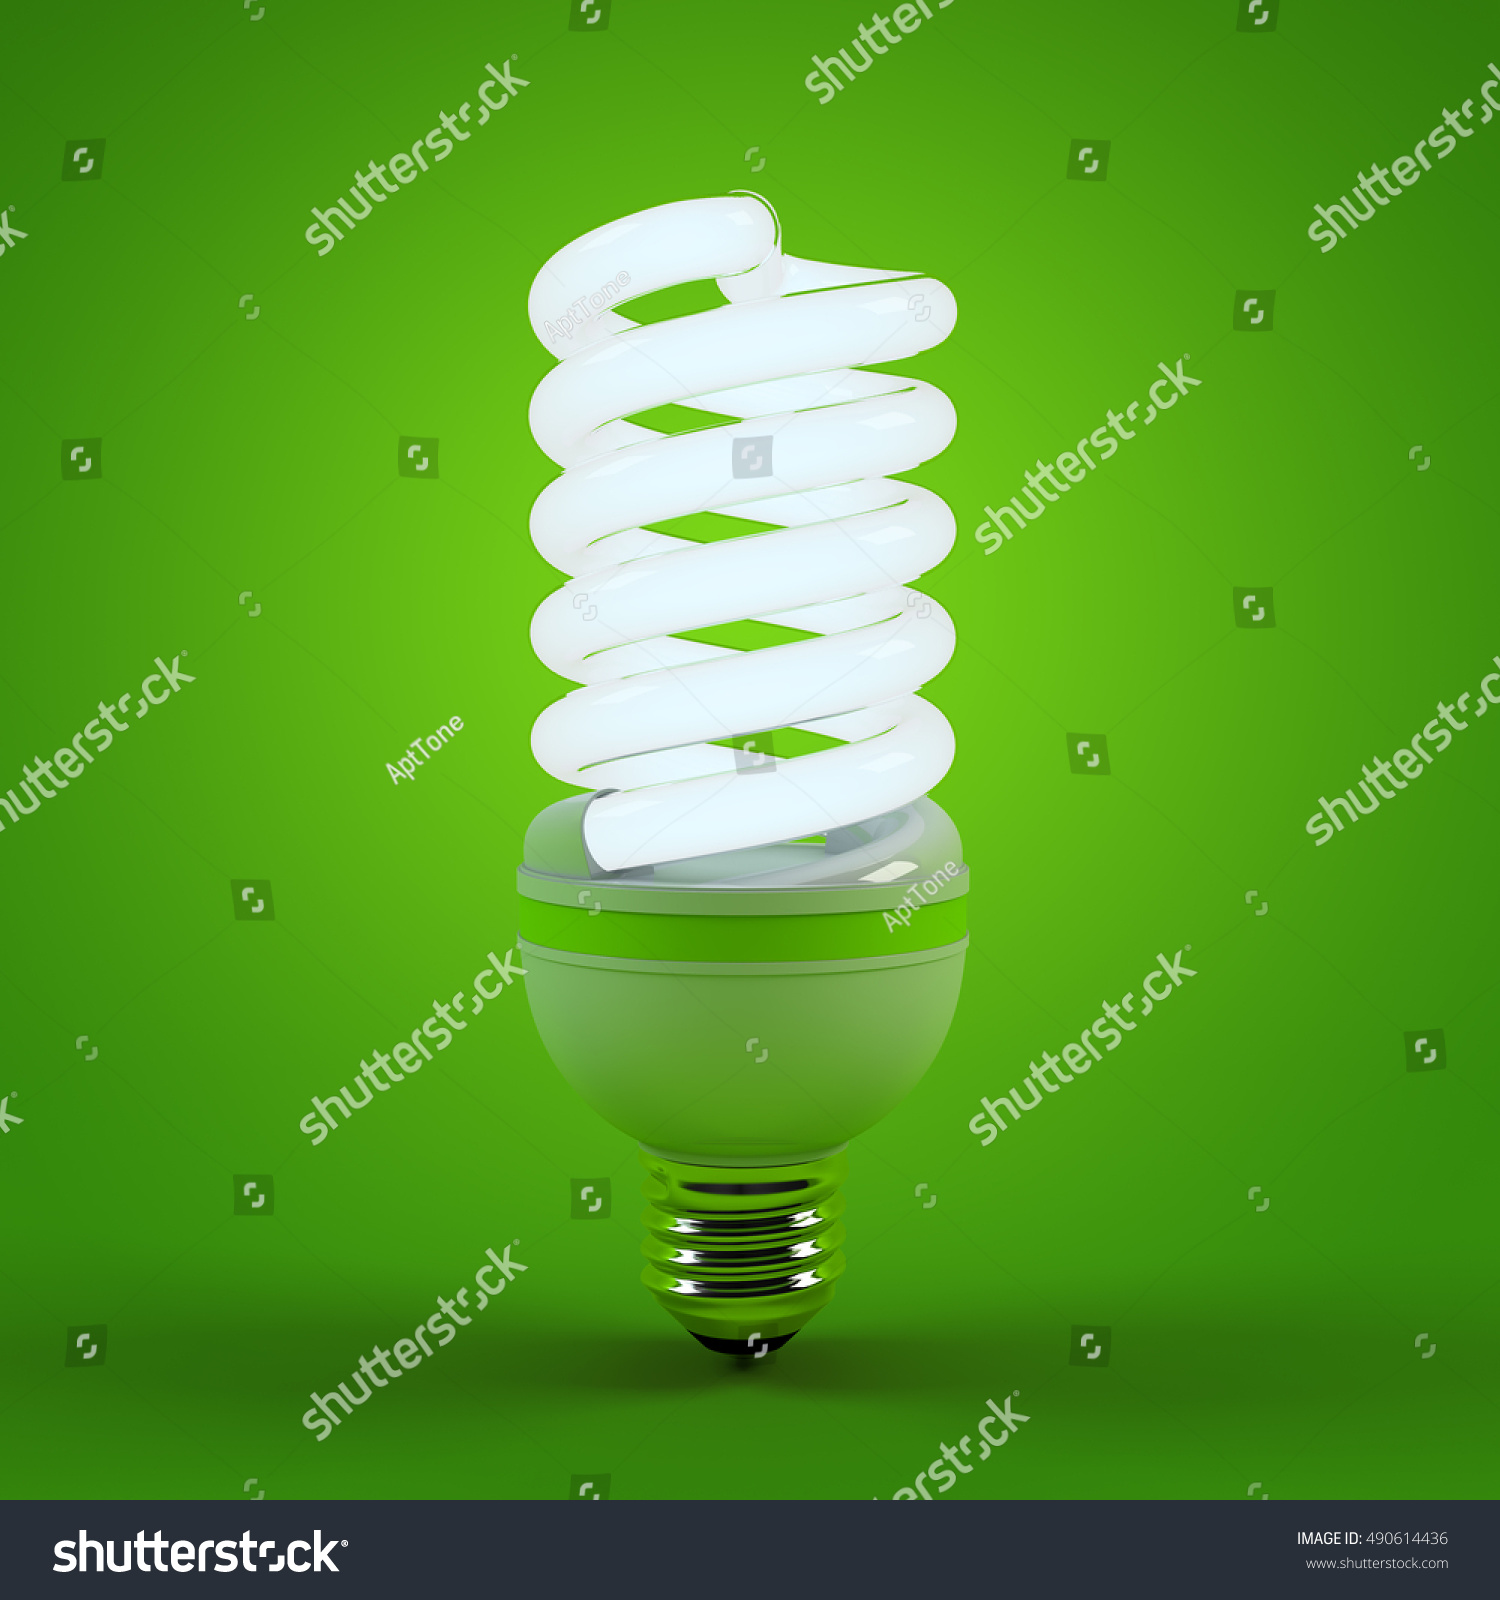 Ecology environment and saving energy  fluorescent light bulb concept of  successful business  Energy saving. Ecology Environment Saving Energy Fluorescent Light Stock